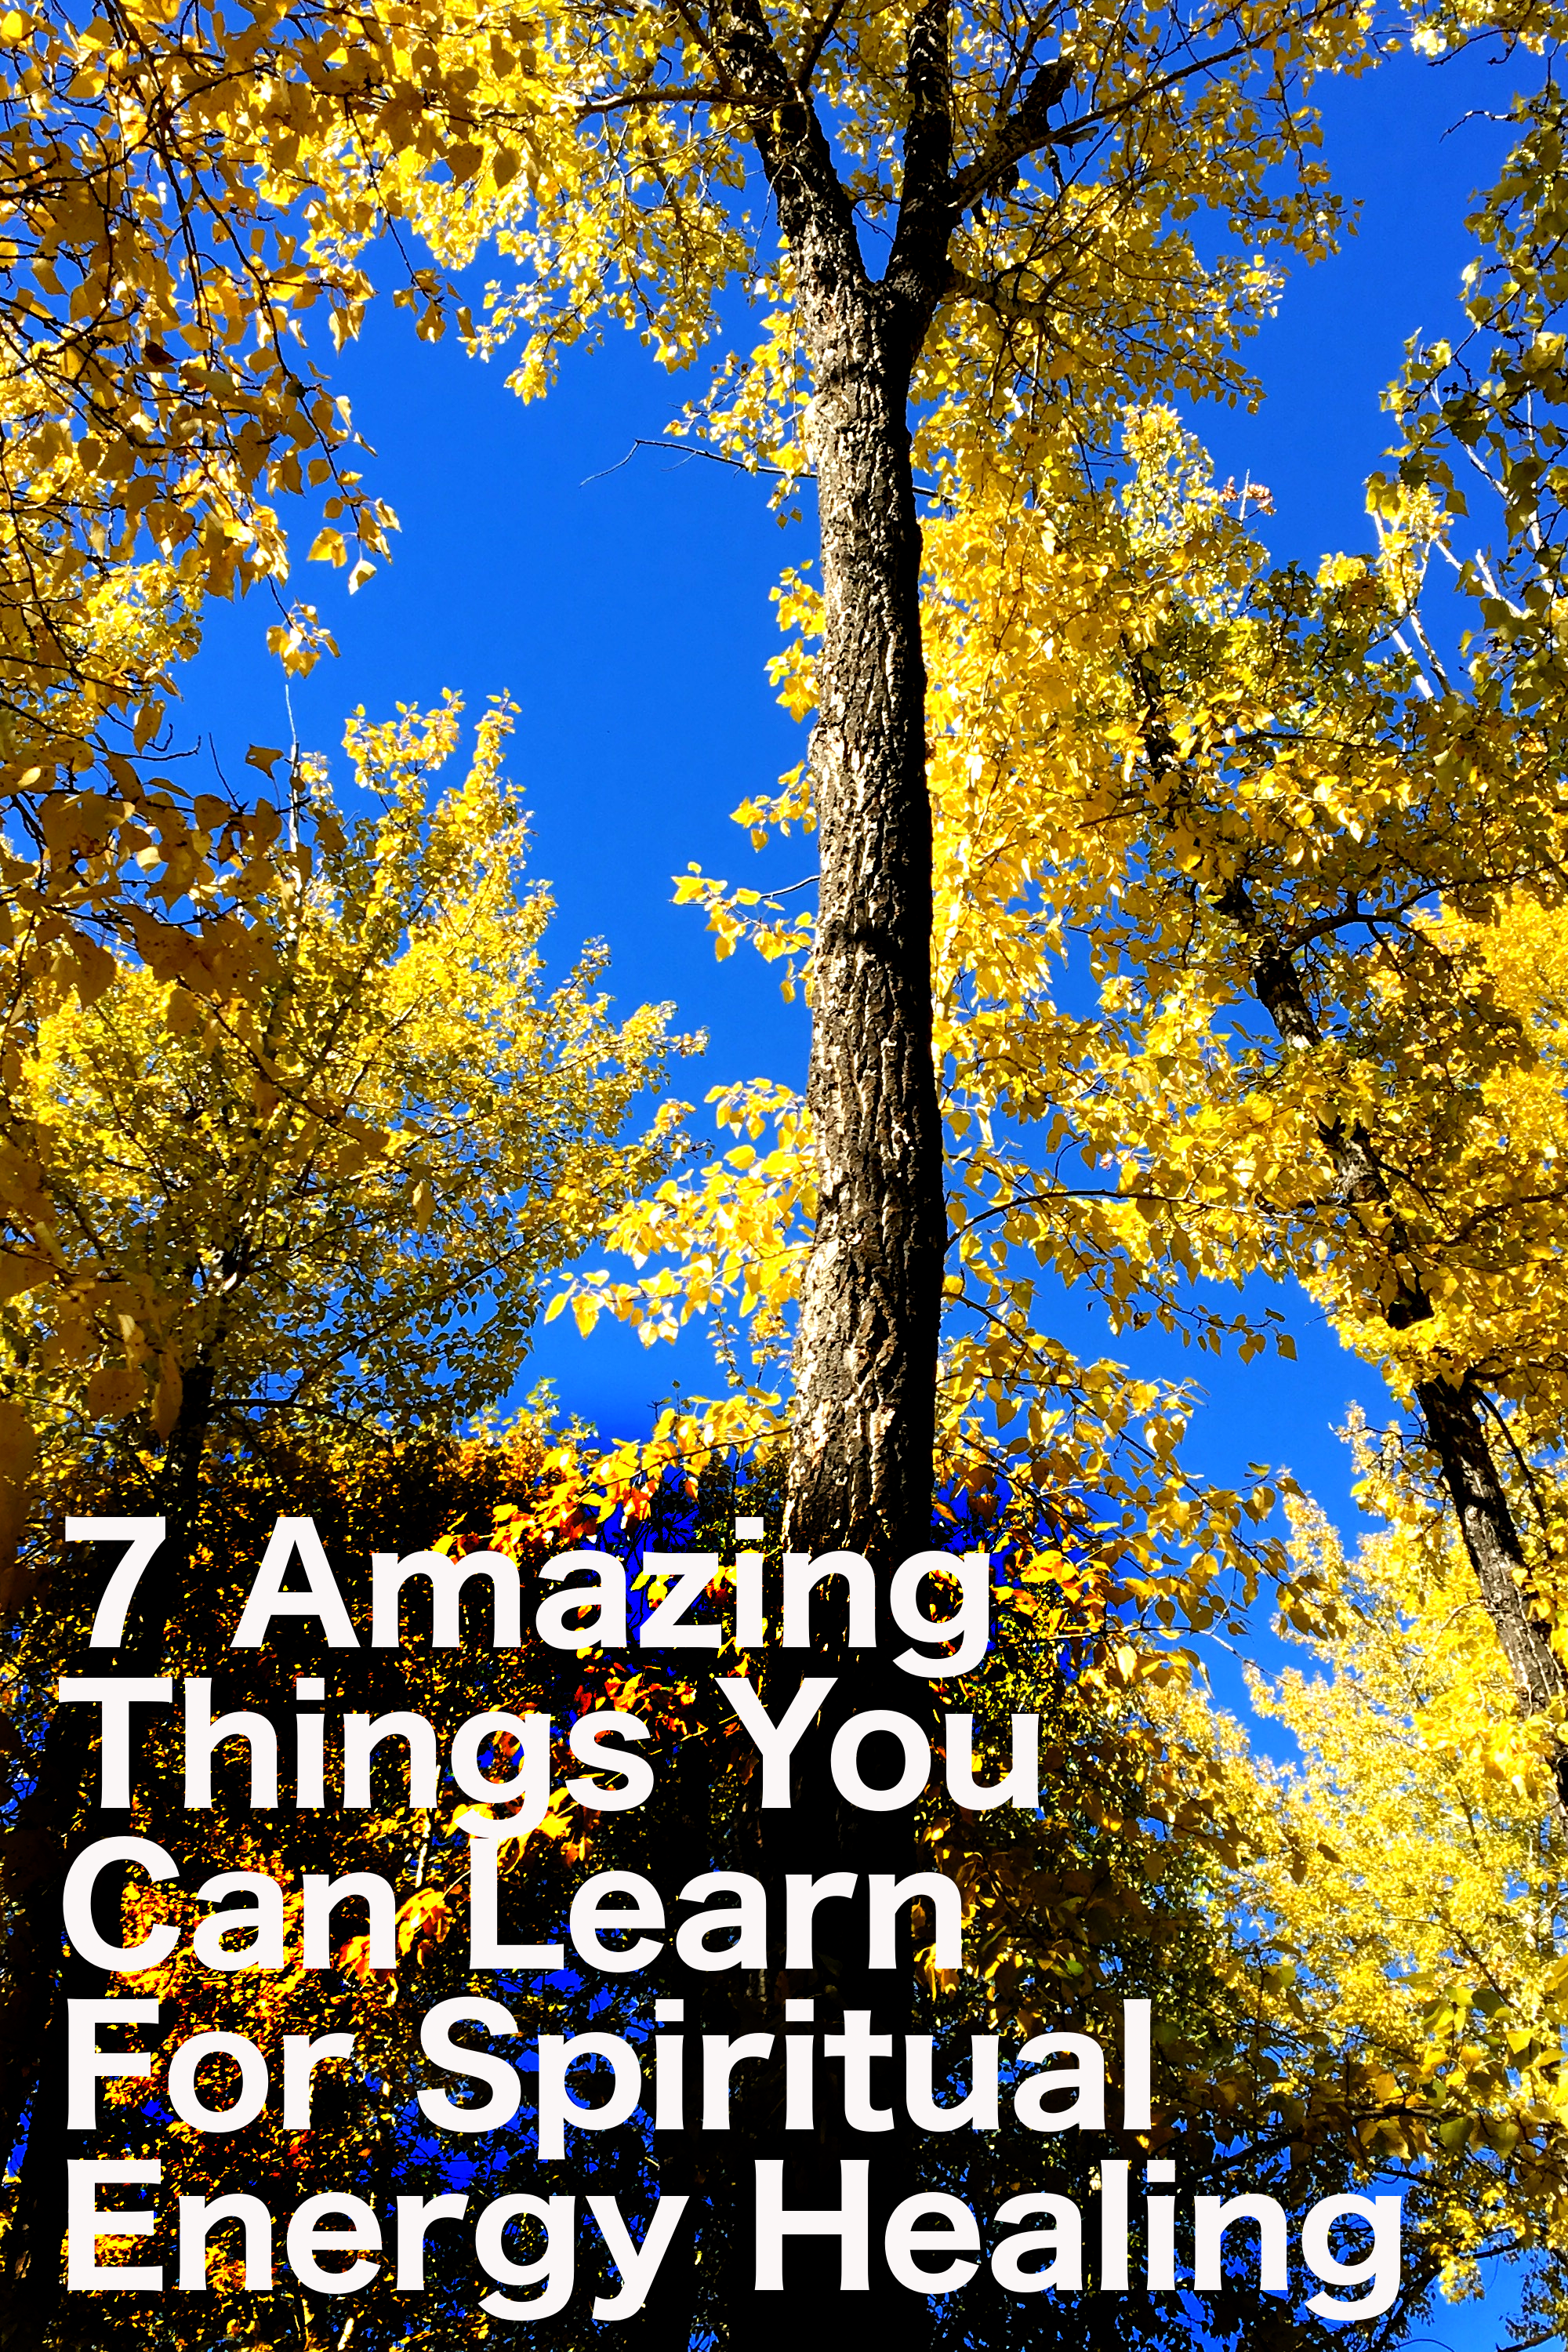 7 Amazing Things You Can Learn For Spiritual Energy Healing